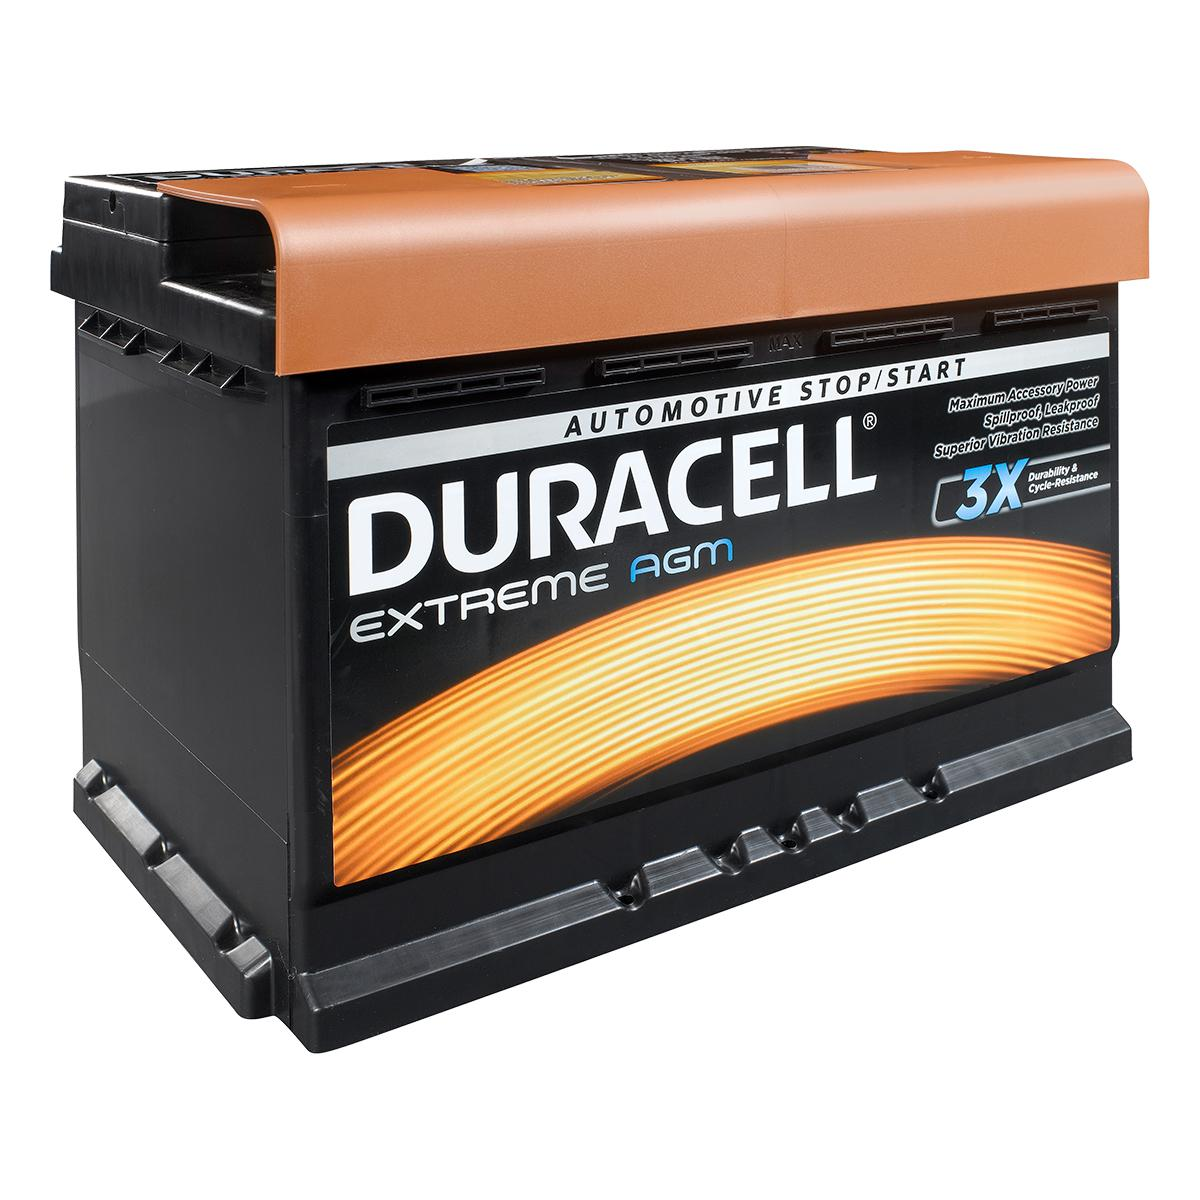 Duracell Extreme AGM